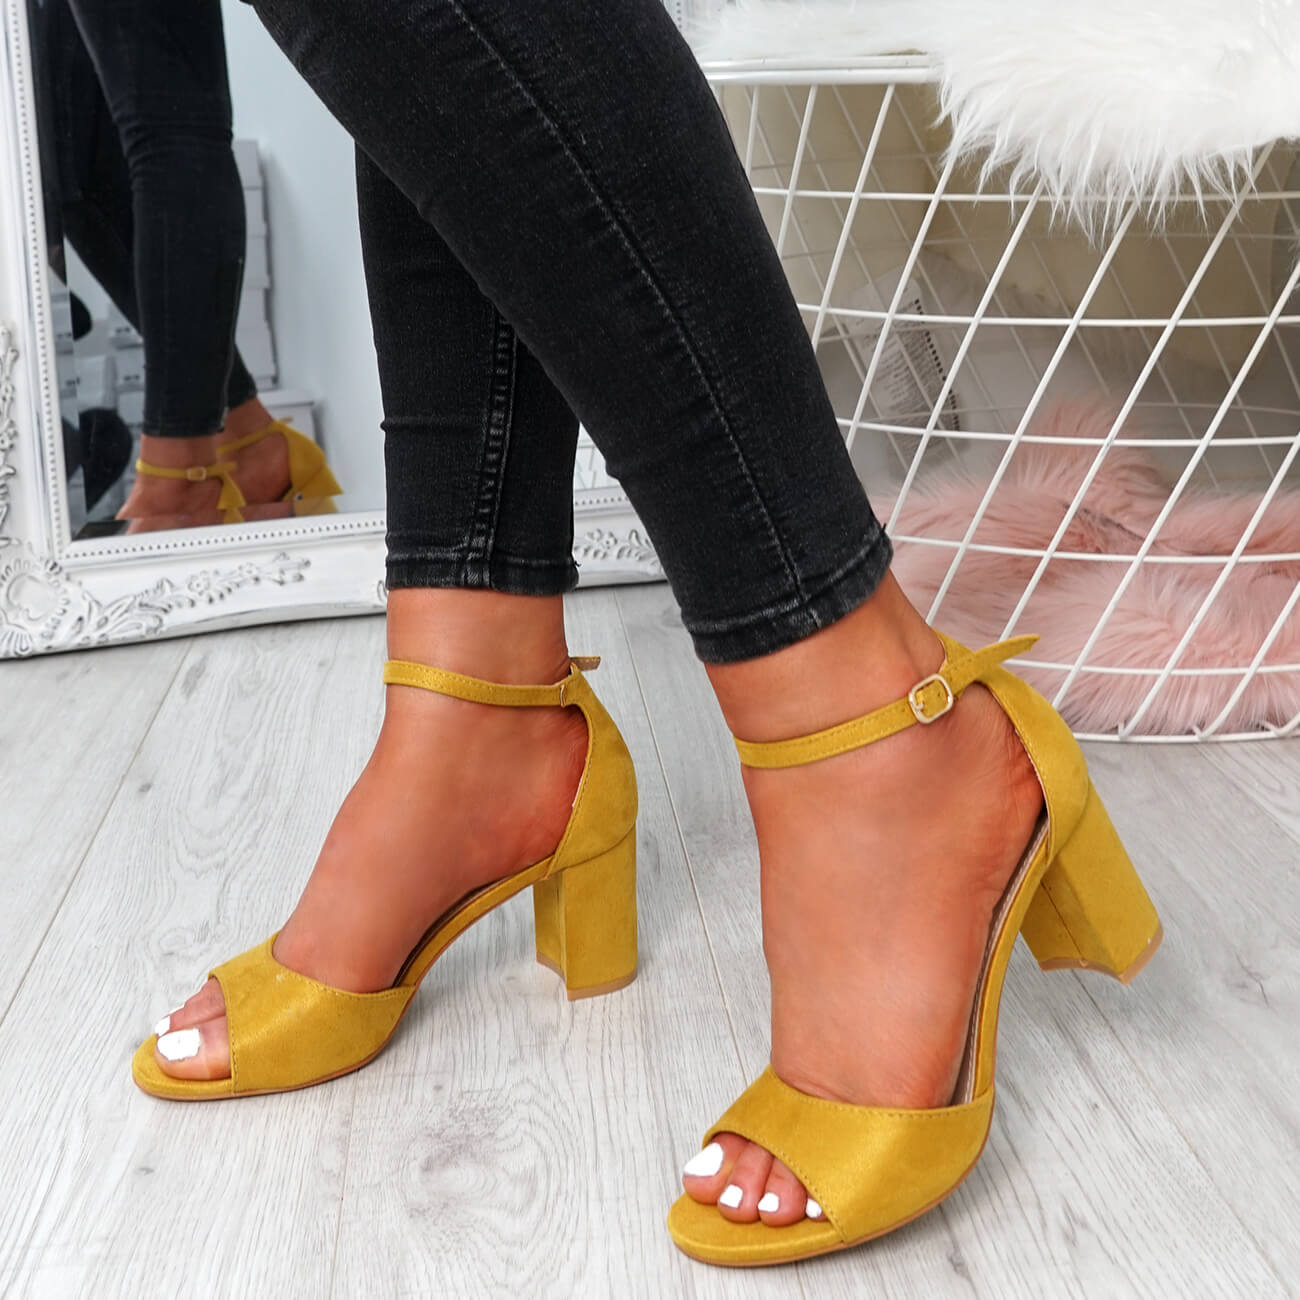 WOMENS-LADIES-ANKLE-STRAP-HIGH-BLOCK-HEEL-SANDALS-PEEP-TOE-PARTY-SHOES-SIZE thumbnail 33